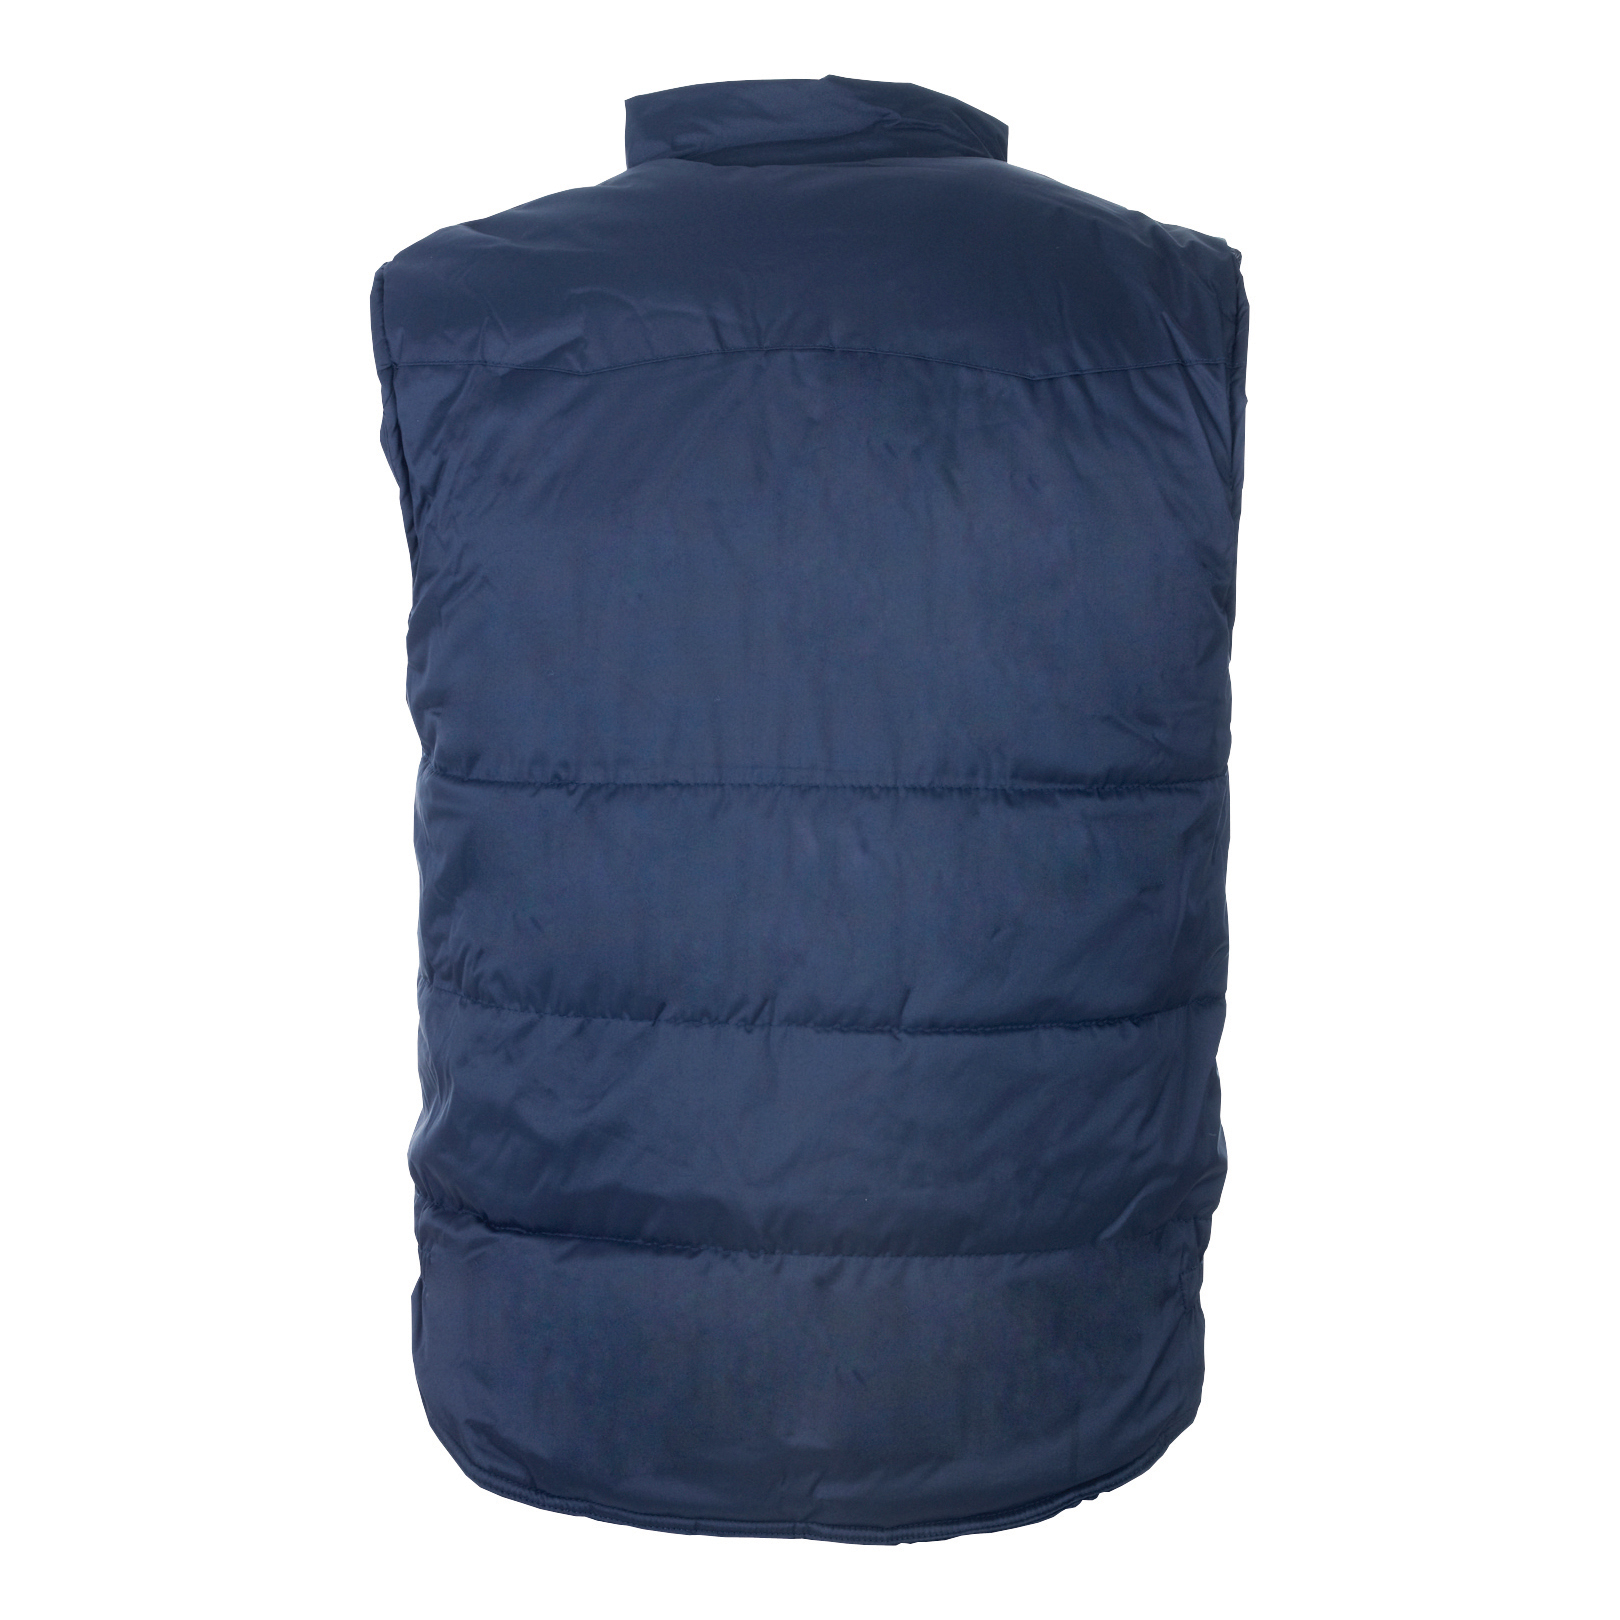 Body Warmer Polyester with Padding & Multi Pockets 2XL Navy Ref HBNXXL *Approx 3 Day Leadtime*